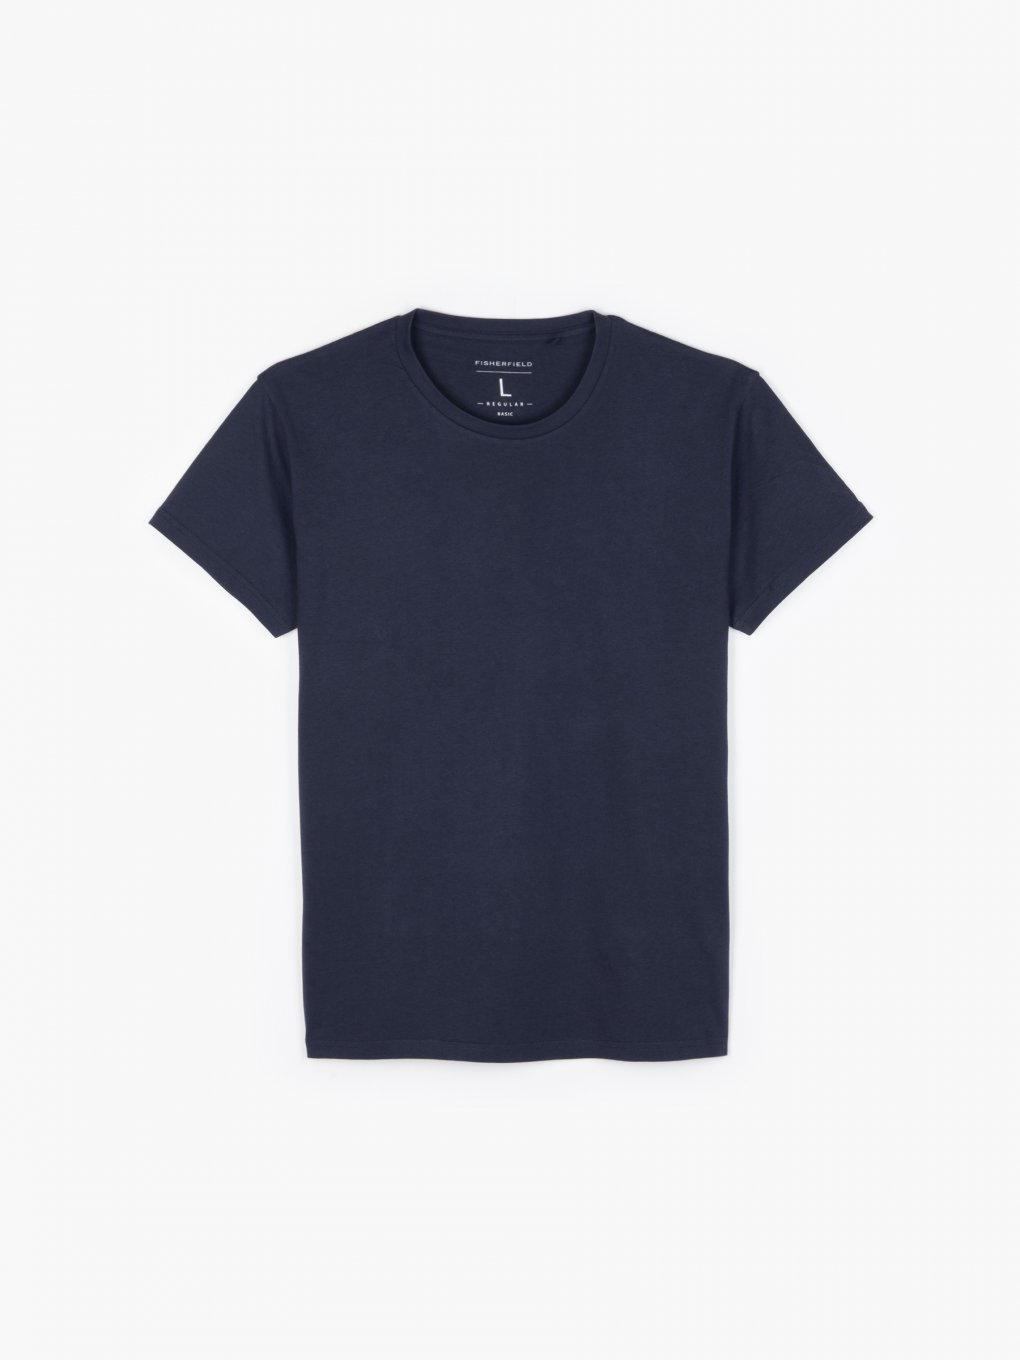 T-shirt basic o regularnym kroju